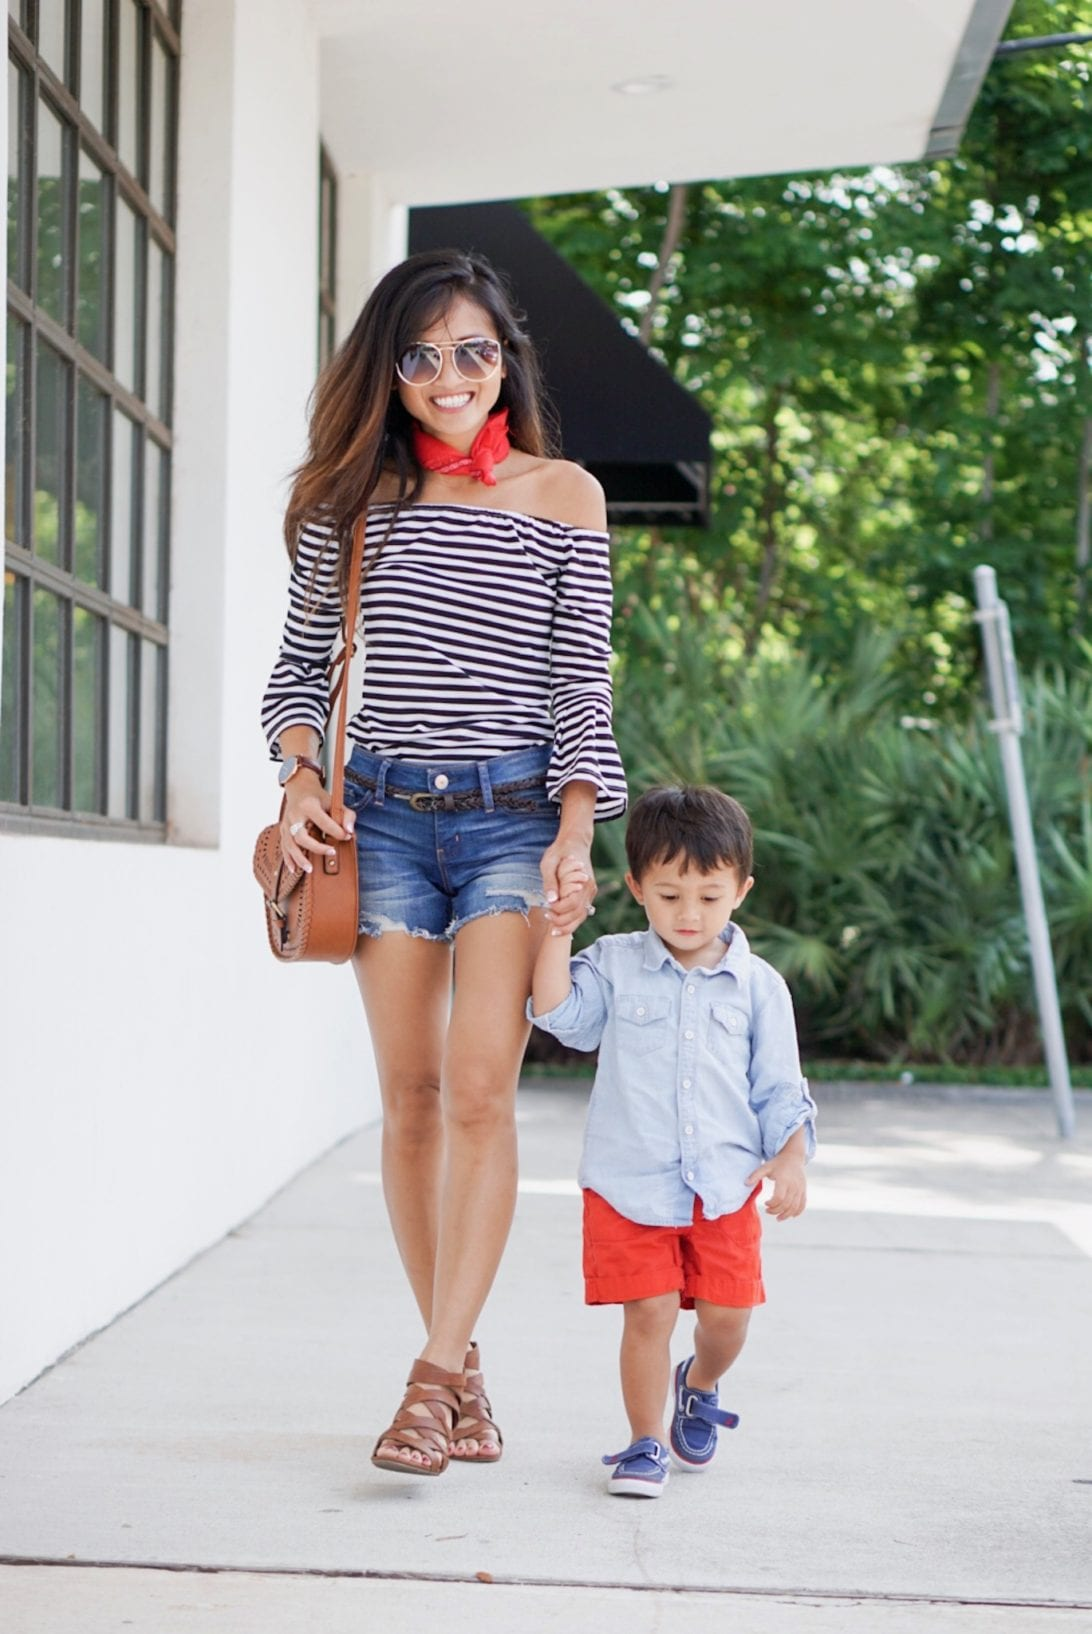 red bandana, neck scarf, striped top, off the shoulder, gladiators, mom shorts, mommy and me, boy mom, toddler boy, outfits, 4th of july, quay sunglasses, cross body bag